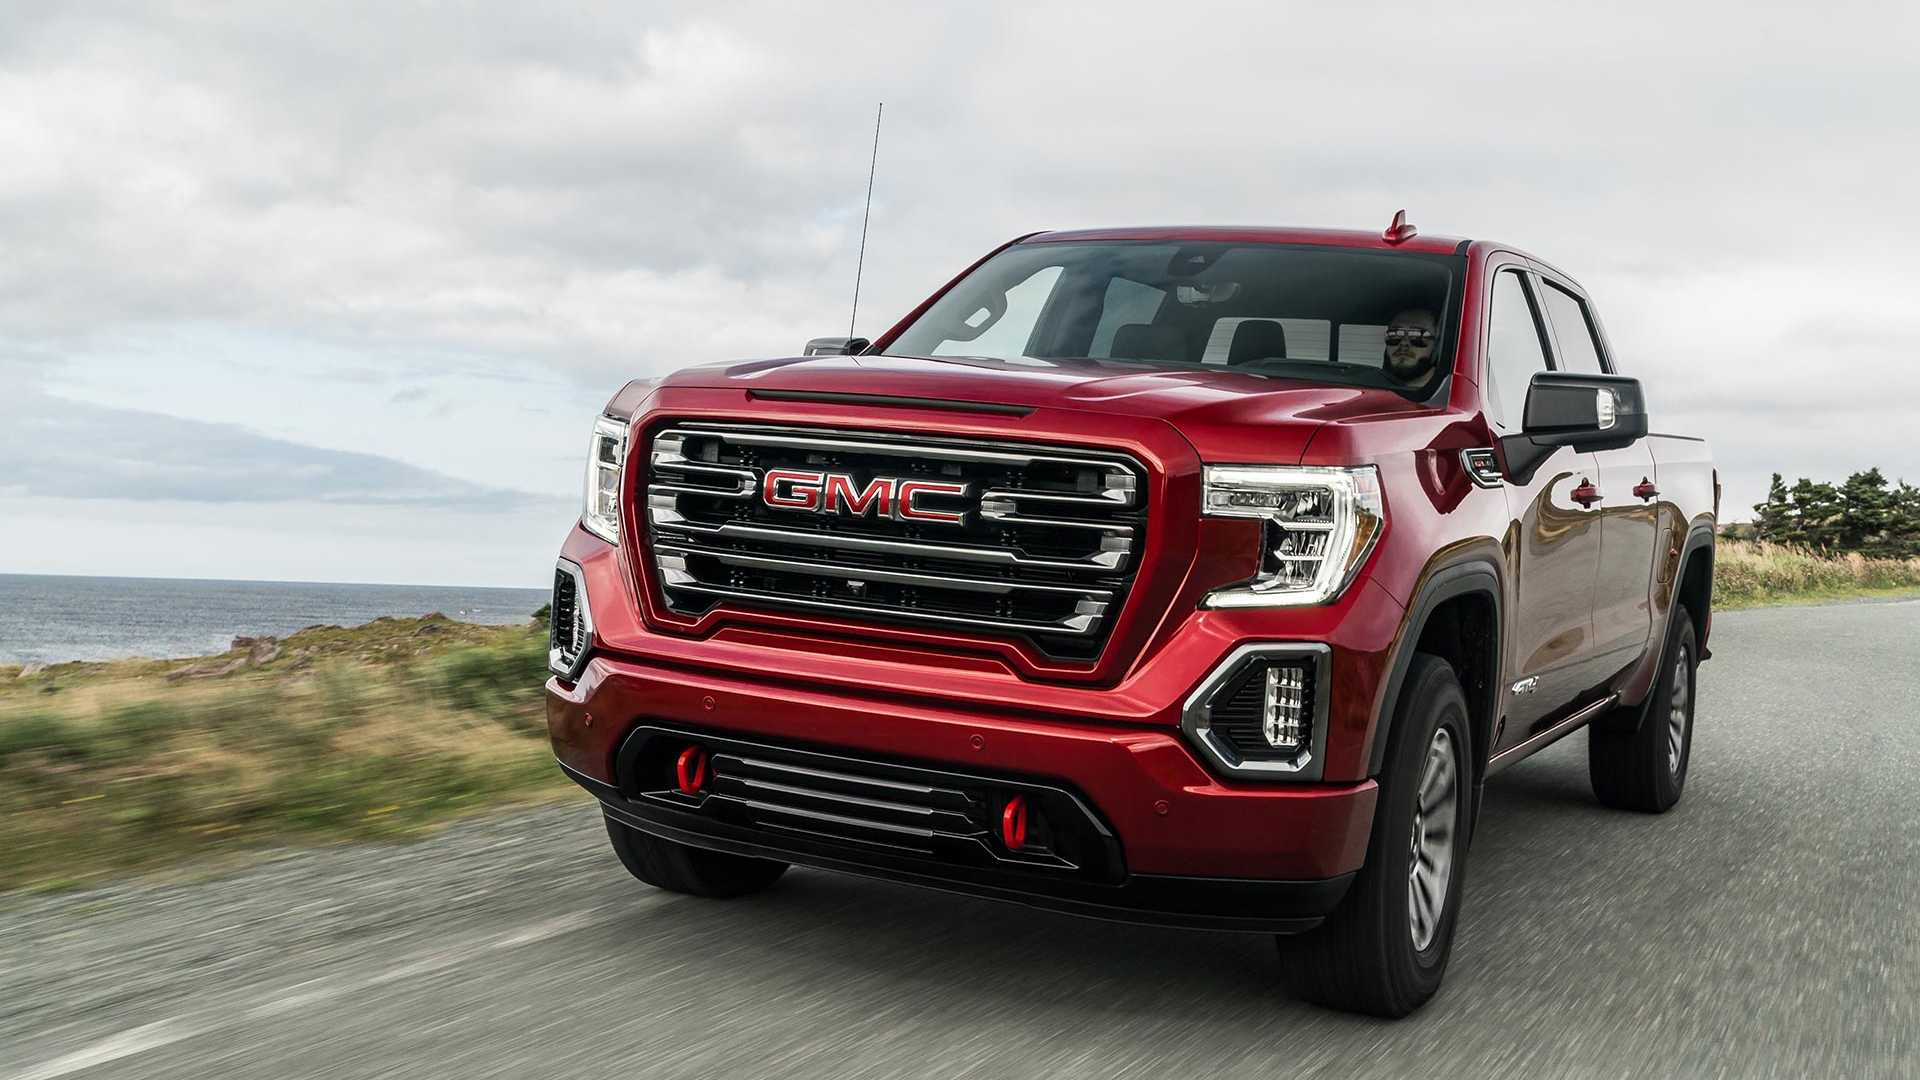 59 Great The 2019 Gmc Sierra Images Performance Images by The 2019 Gmc Sierra Images Performance